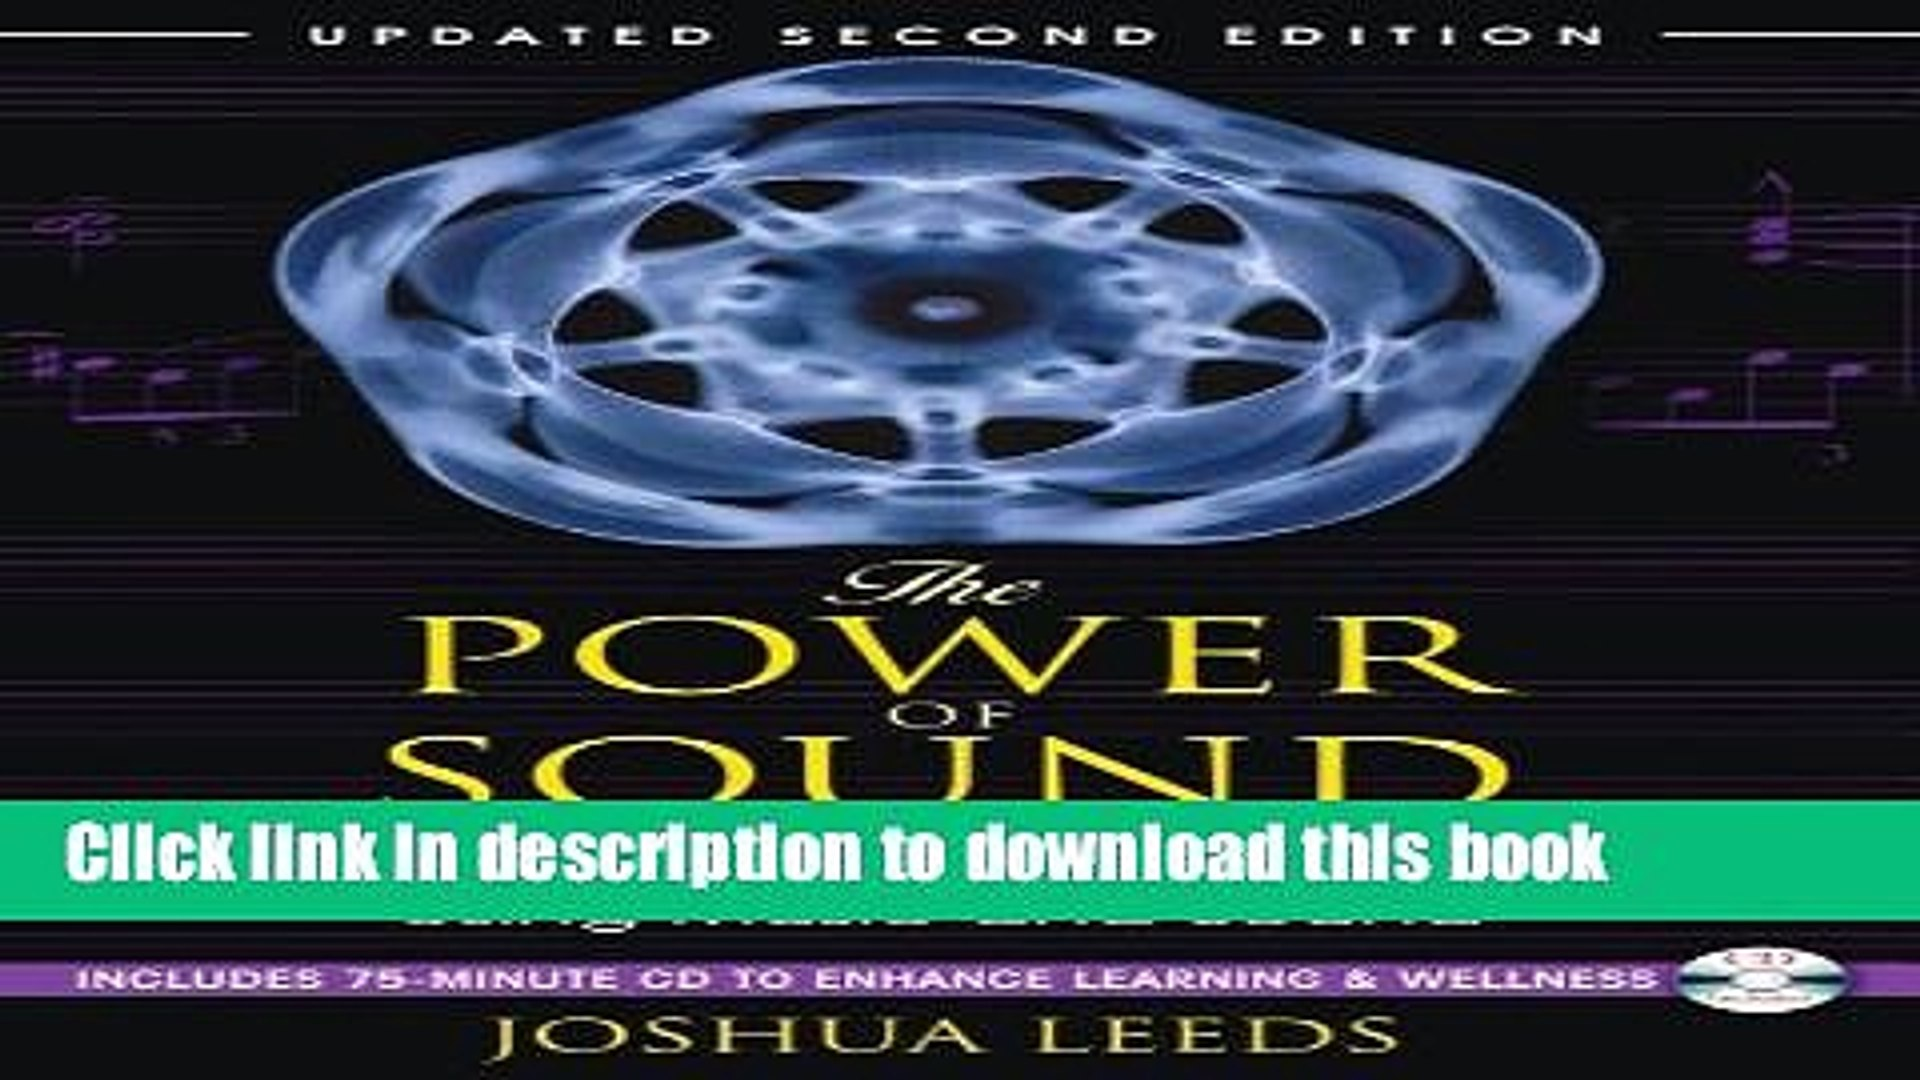 Ebook The Power of Sound: How to Be Healthy and Productive Using Music and Sound Full Online